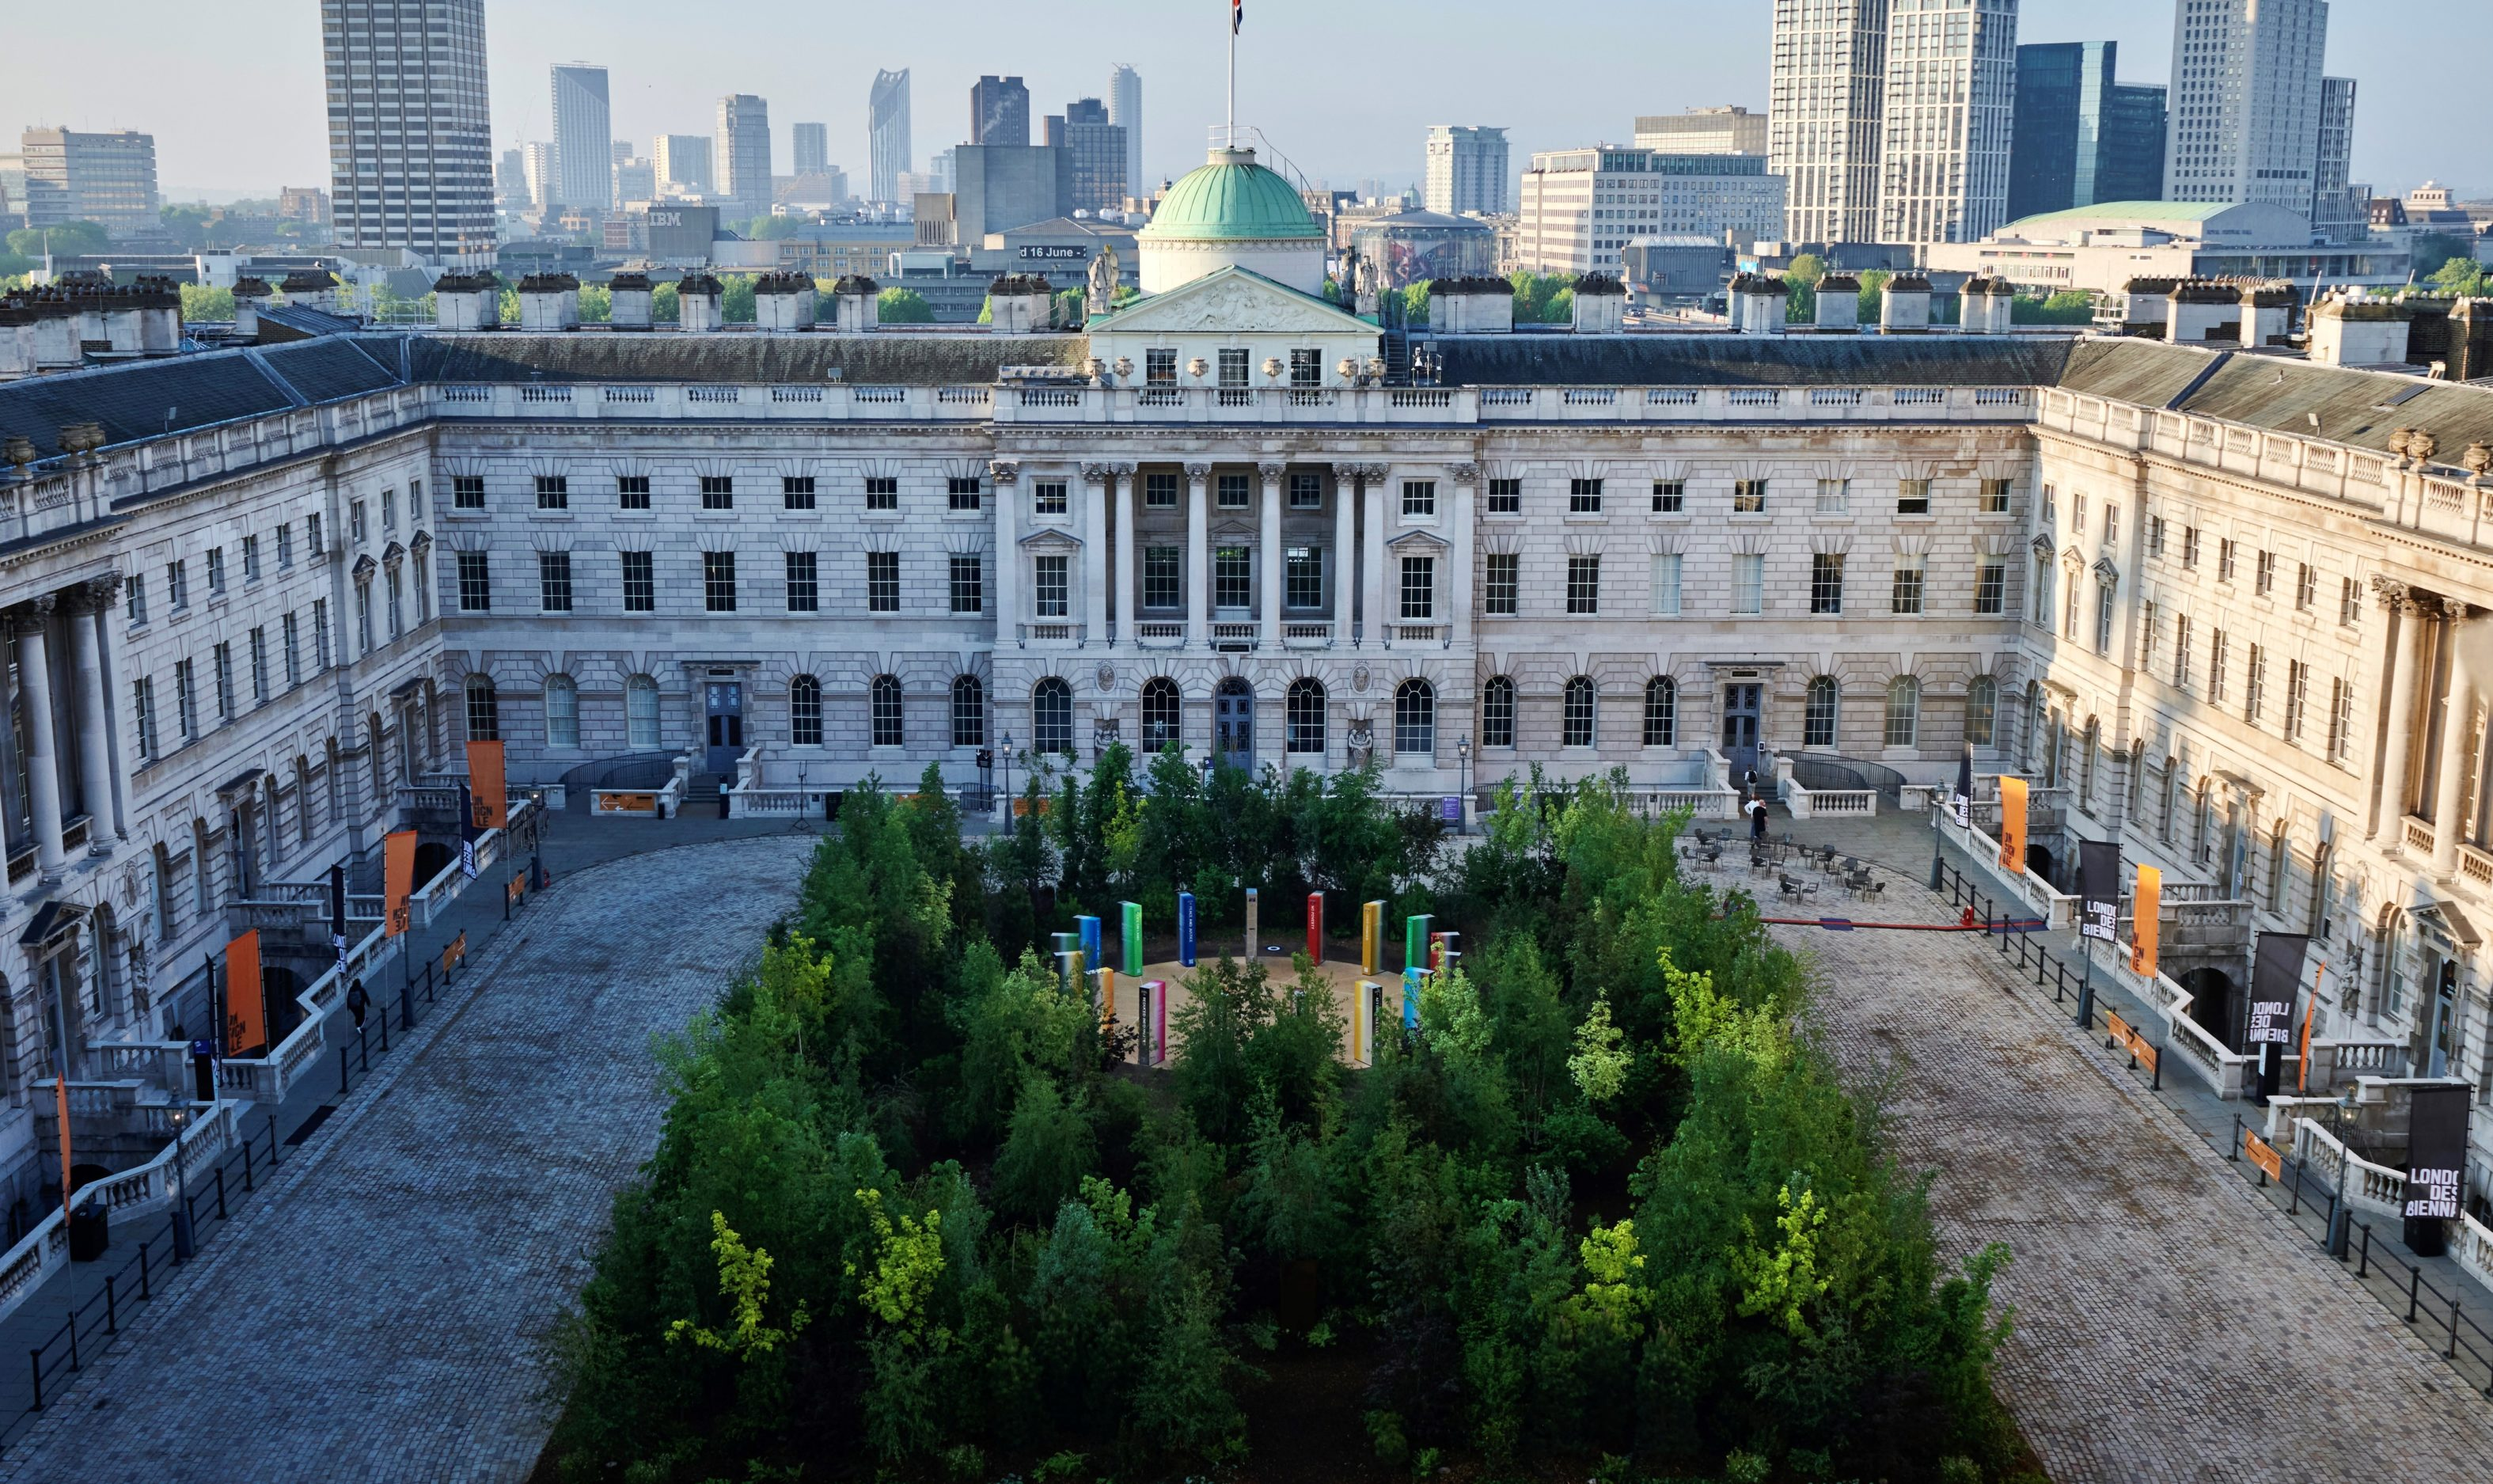 Forest for change at London Design Biennale